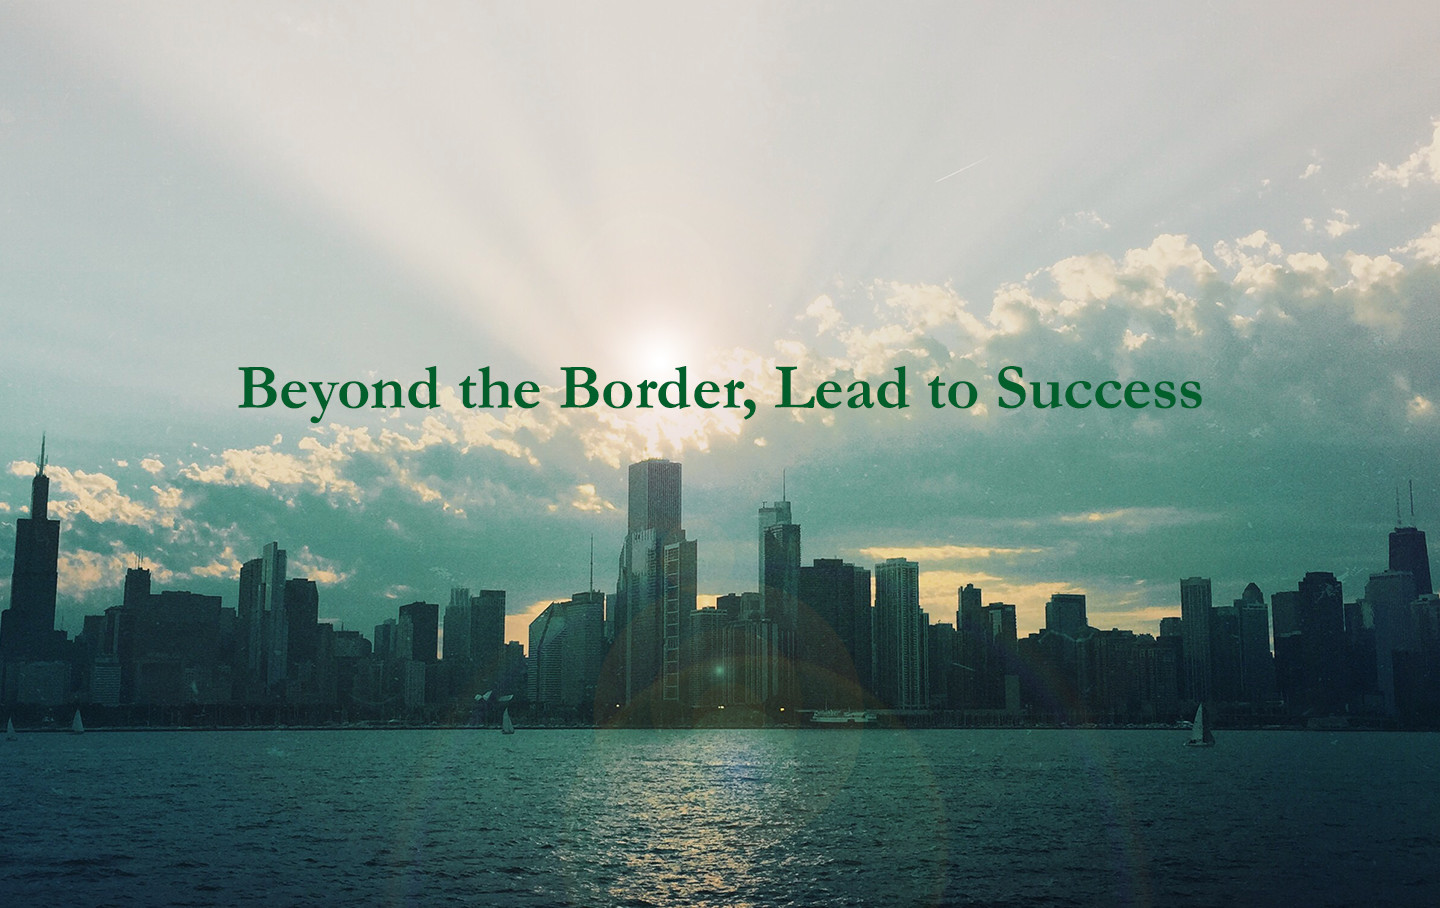 Beyond the Border, Lead to Success